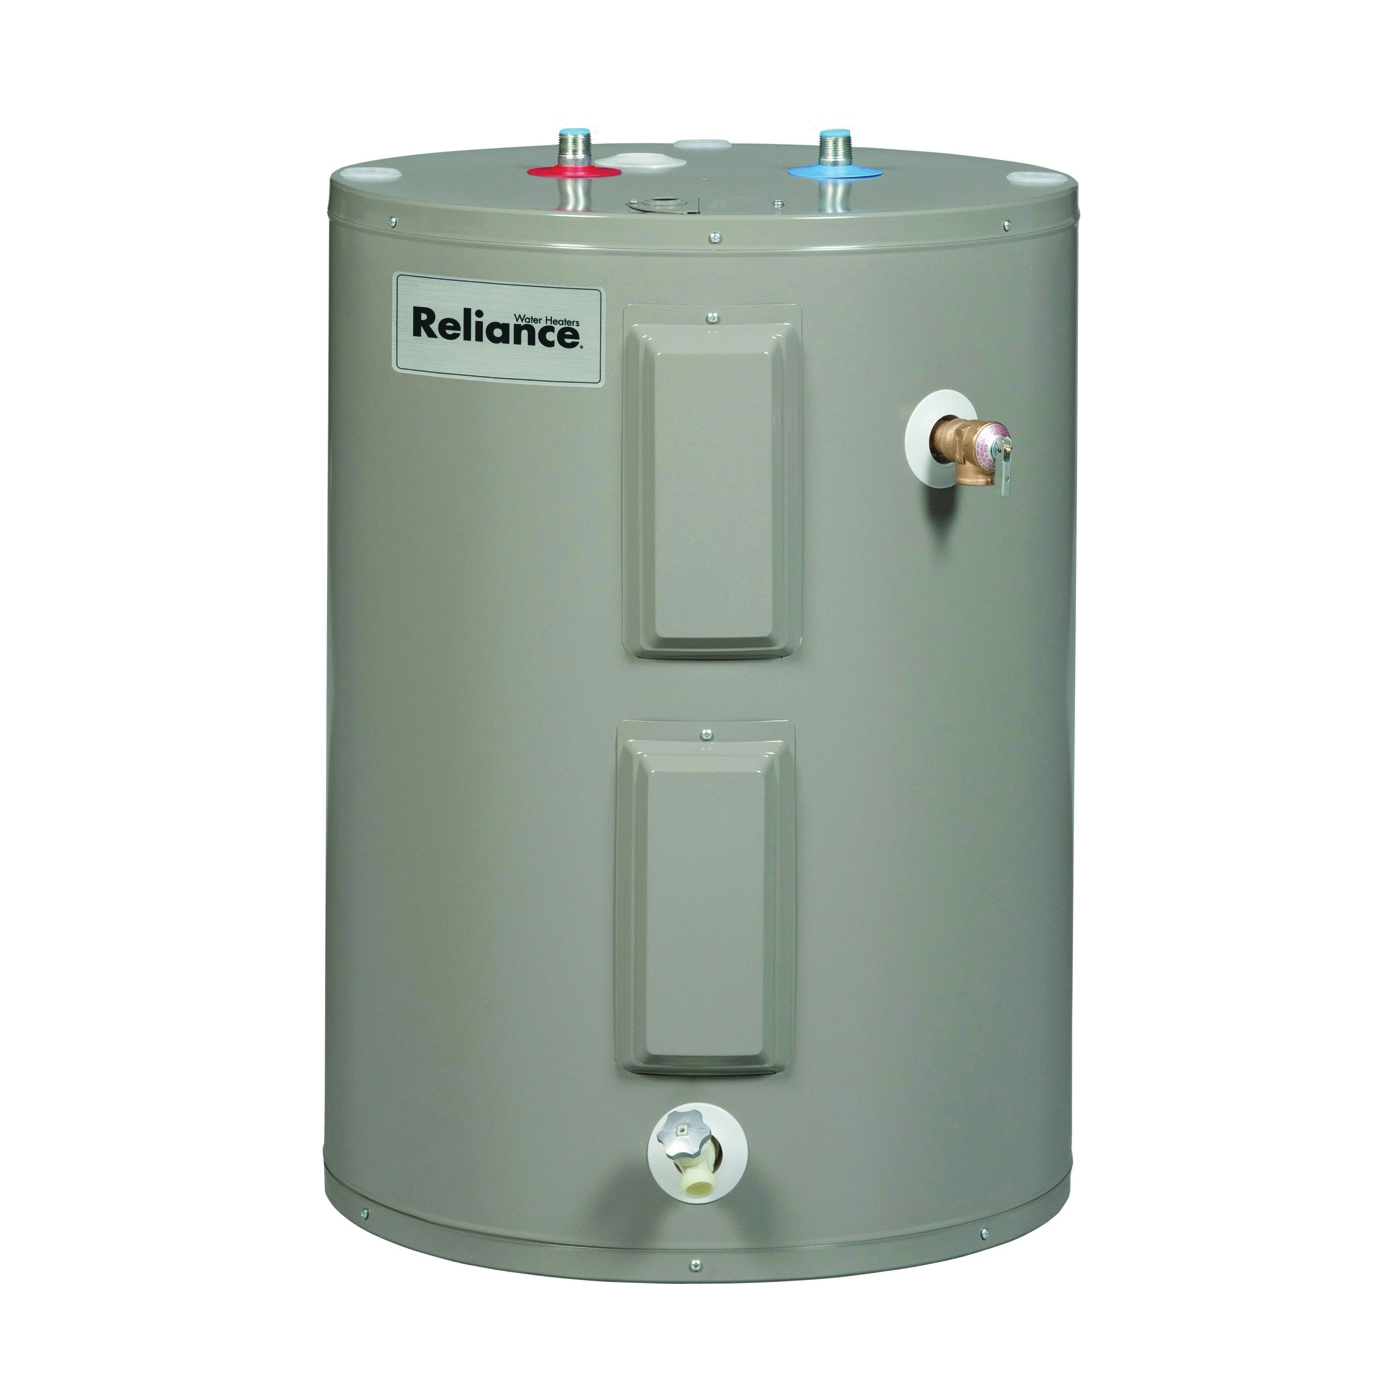 Picture of Reliance 6 50 EORT Electric Water Heater, 30 A, 240 V, 6000 W, 50 gal Tank, 93 % Energy Efficiency